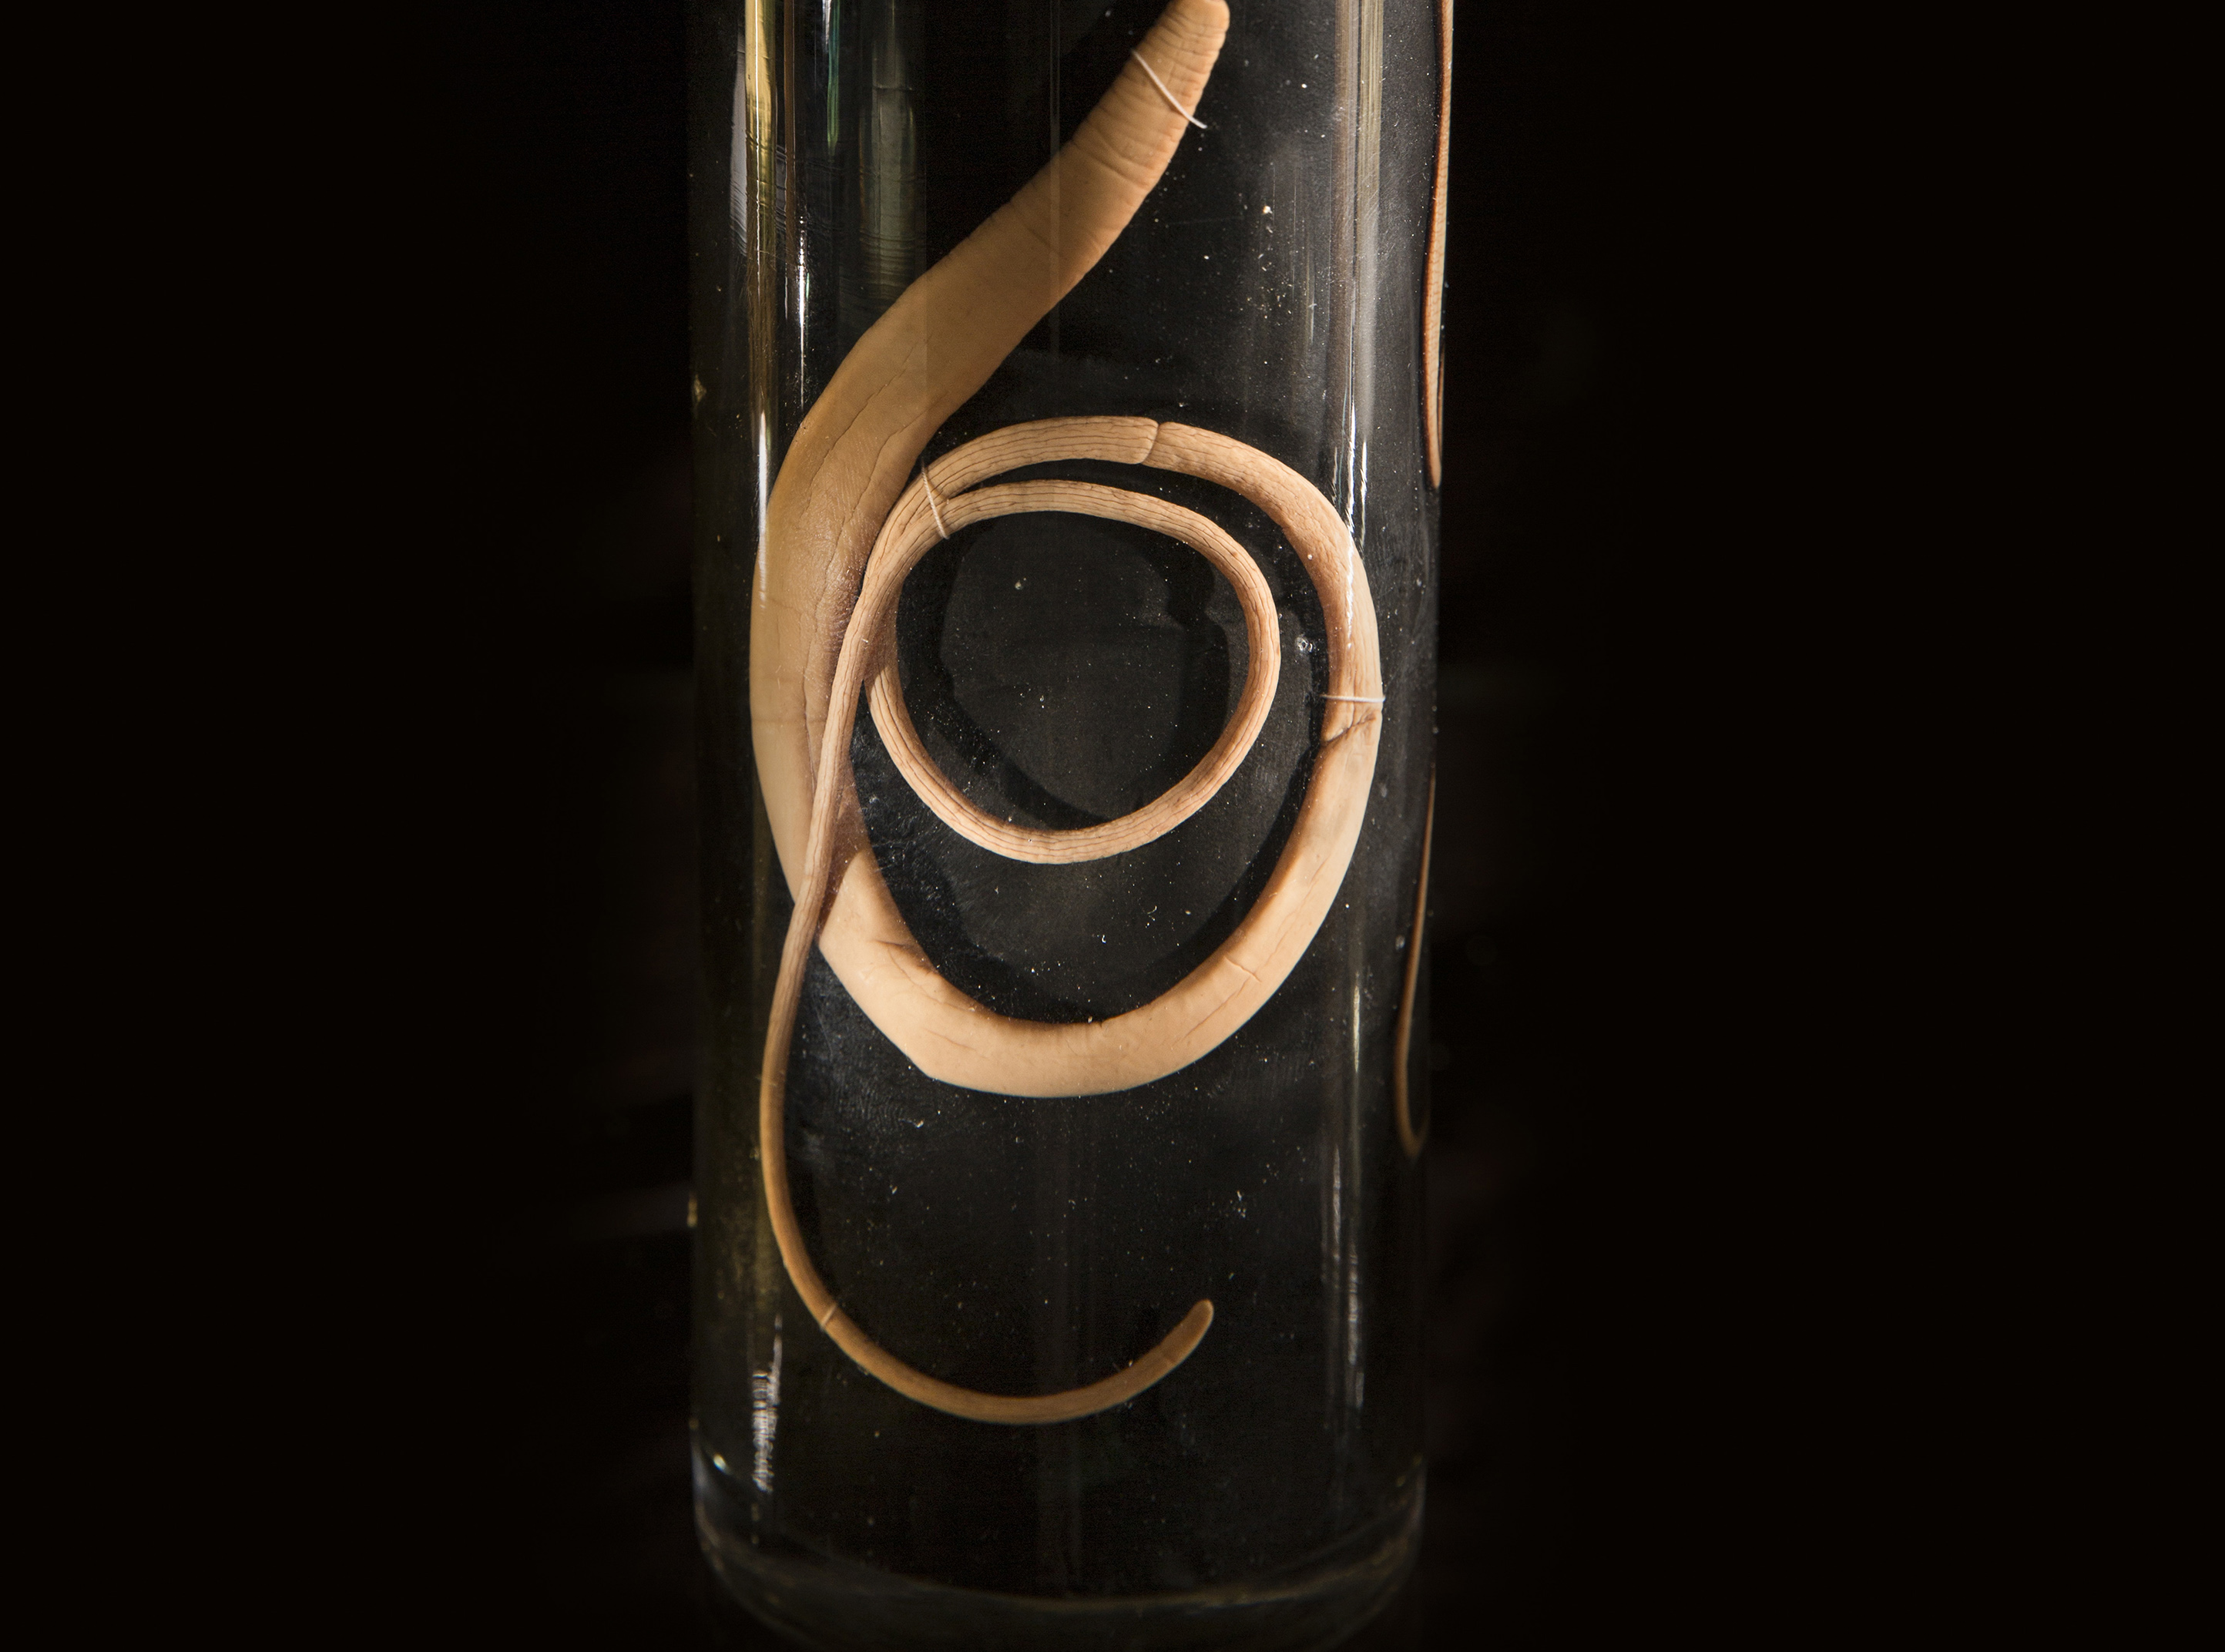 cropped photo of worm in specimen jar